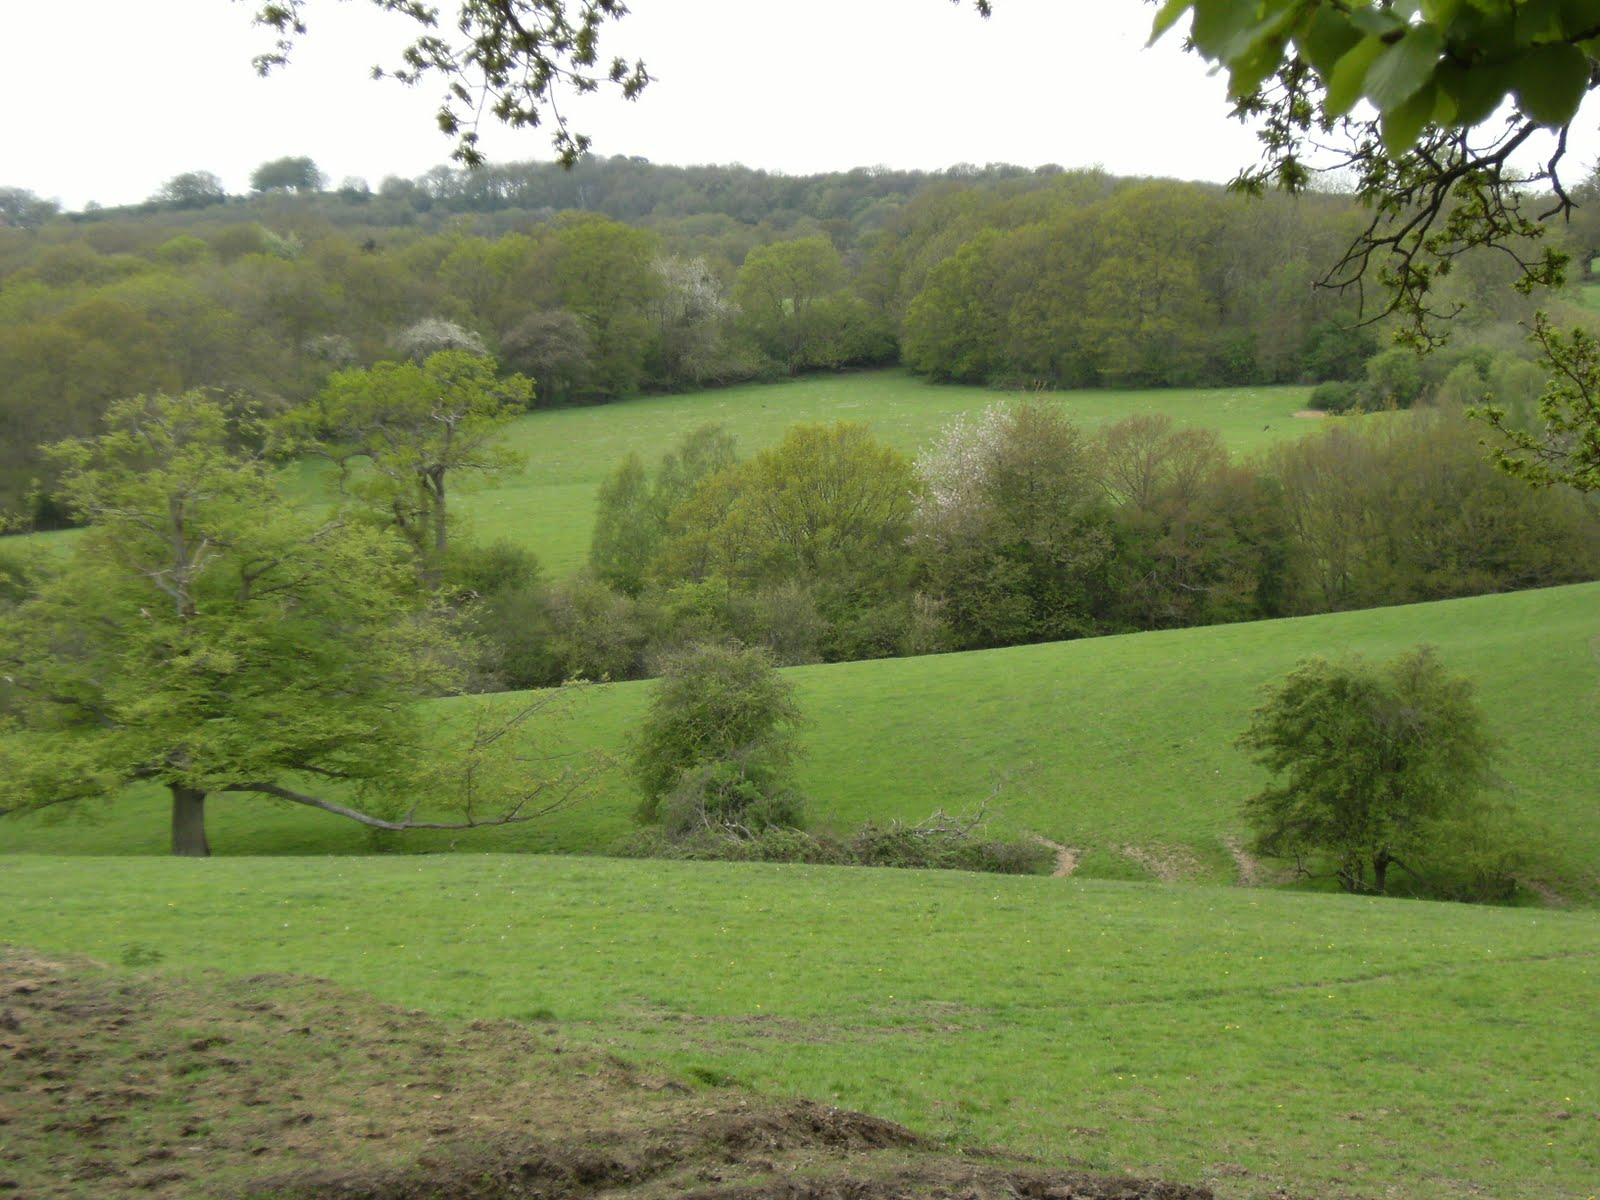 1005050010 Wealden view near Chiddingstone Hoath, spring